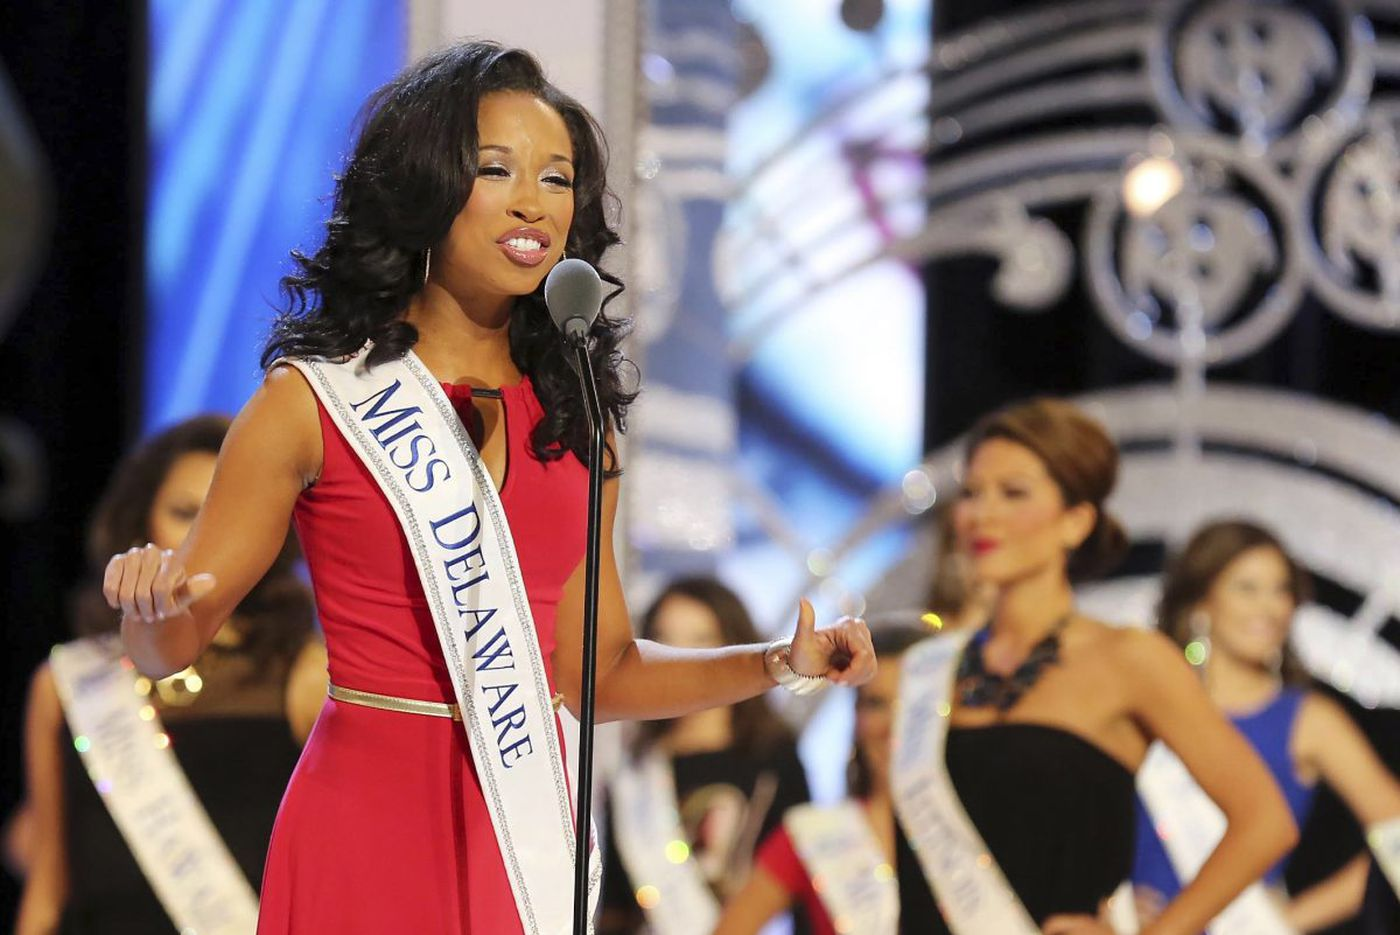 N.J. woman is not just a pageant winner - she's a Miss America scholar